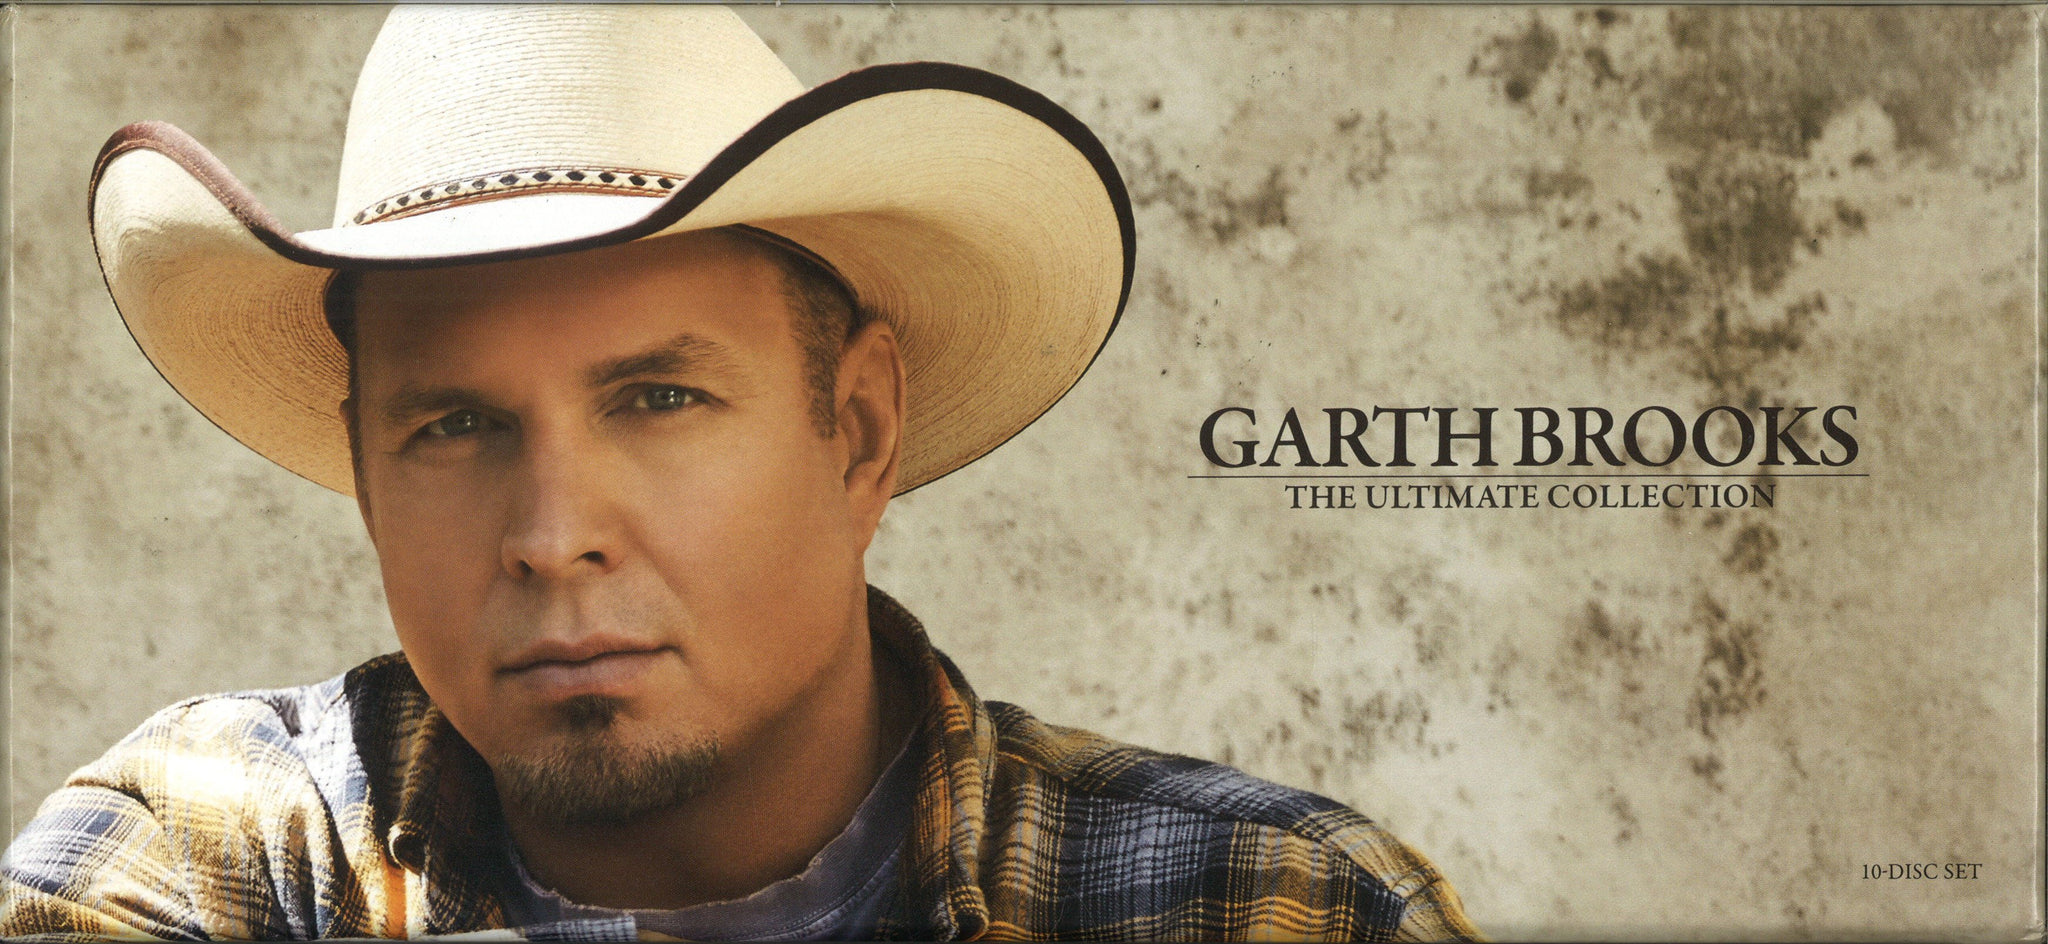 Garth Brooks The Ultimate Collection: 10 CD Set